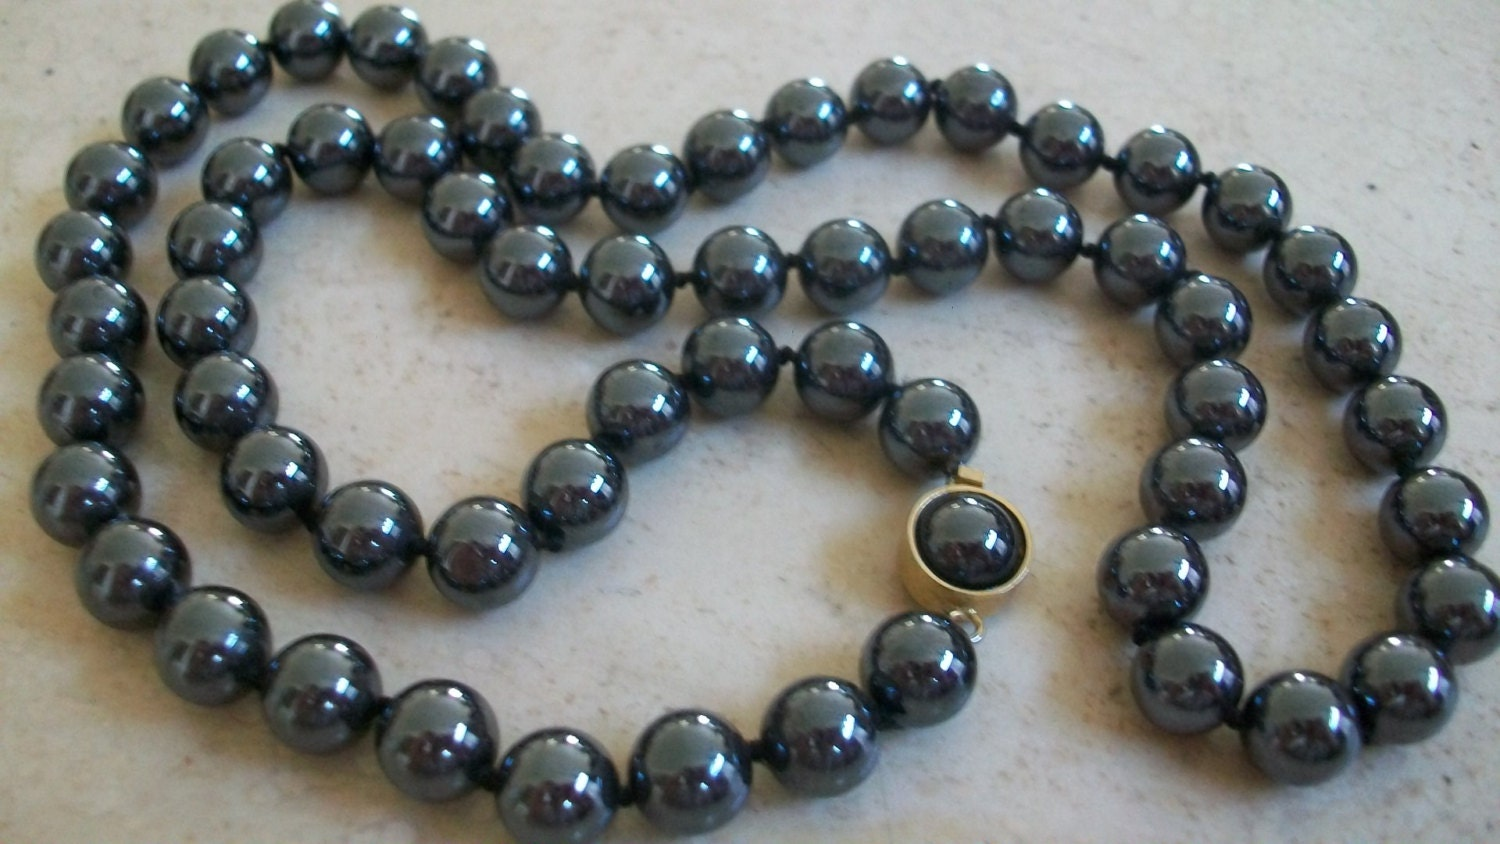 hematite single men Hematite healing properties leave hematite near the front door of your home to draw the energies you desire into your life alternatively think of attraction in terms of what the stone can absorb – wear it as a worry stone and let the mineral content direct those apprehensions and concerns right into mother earth.